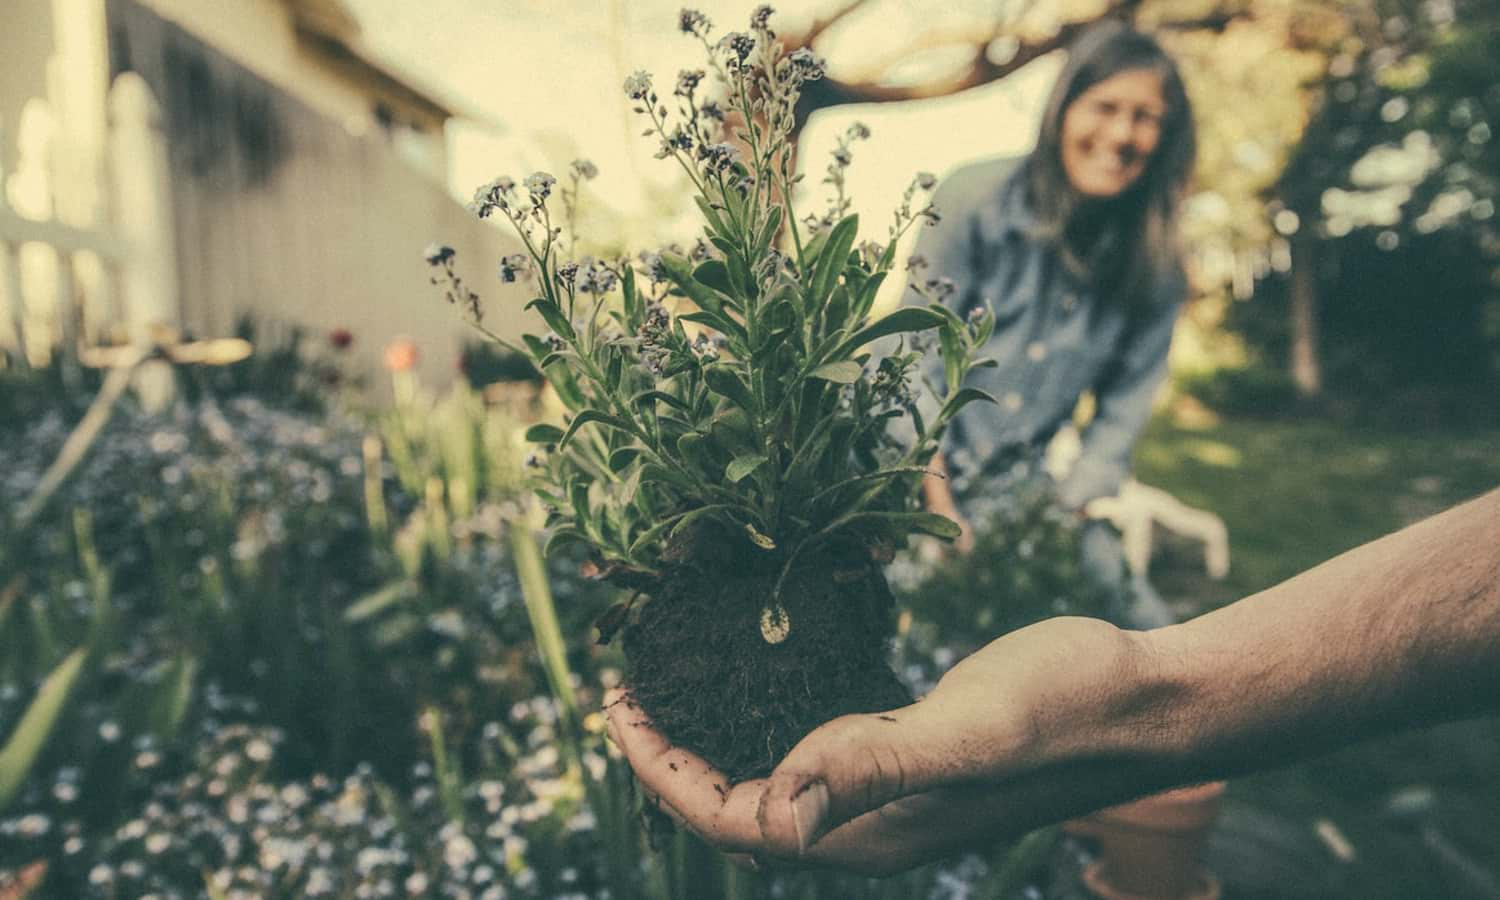 Vegetable gardening takes center stage during the pandemic, nurturing the emotional wellbeing of an increasing number of home gardeners